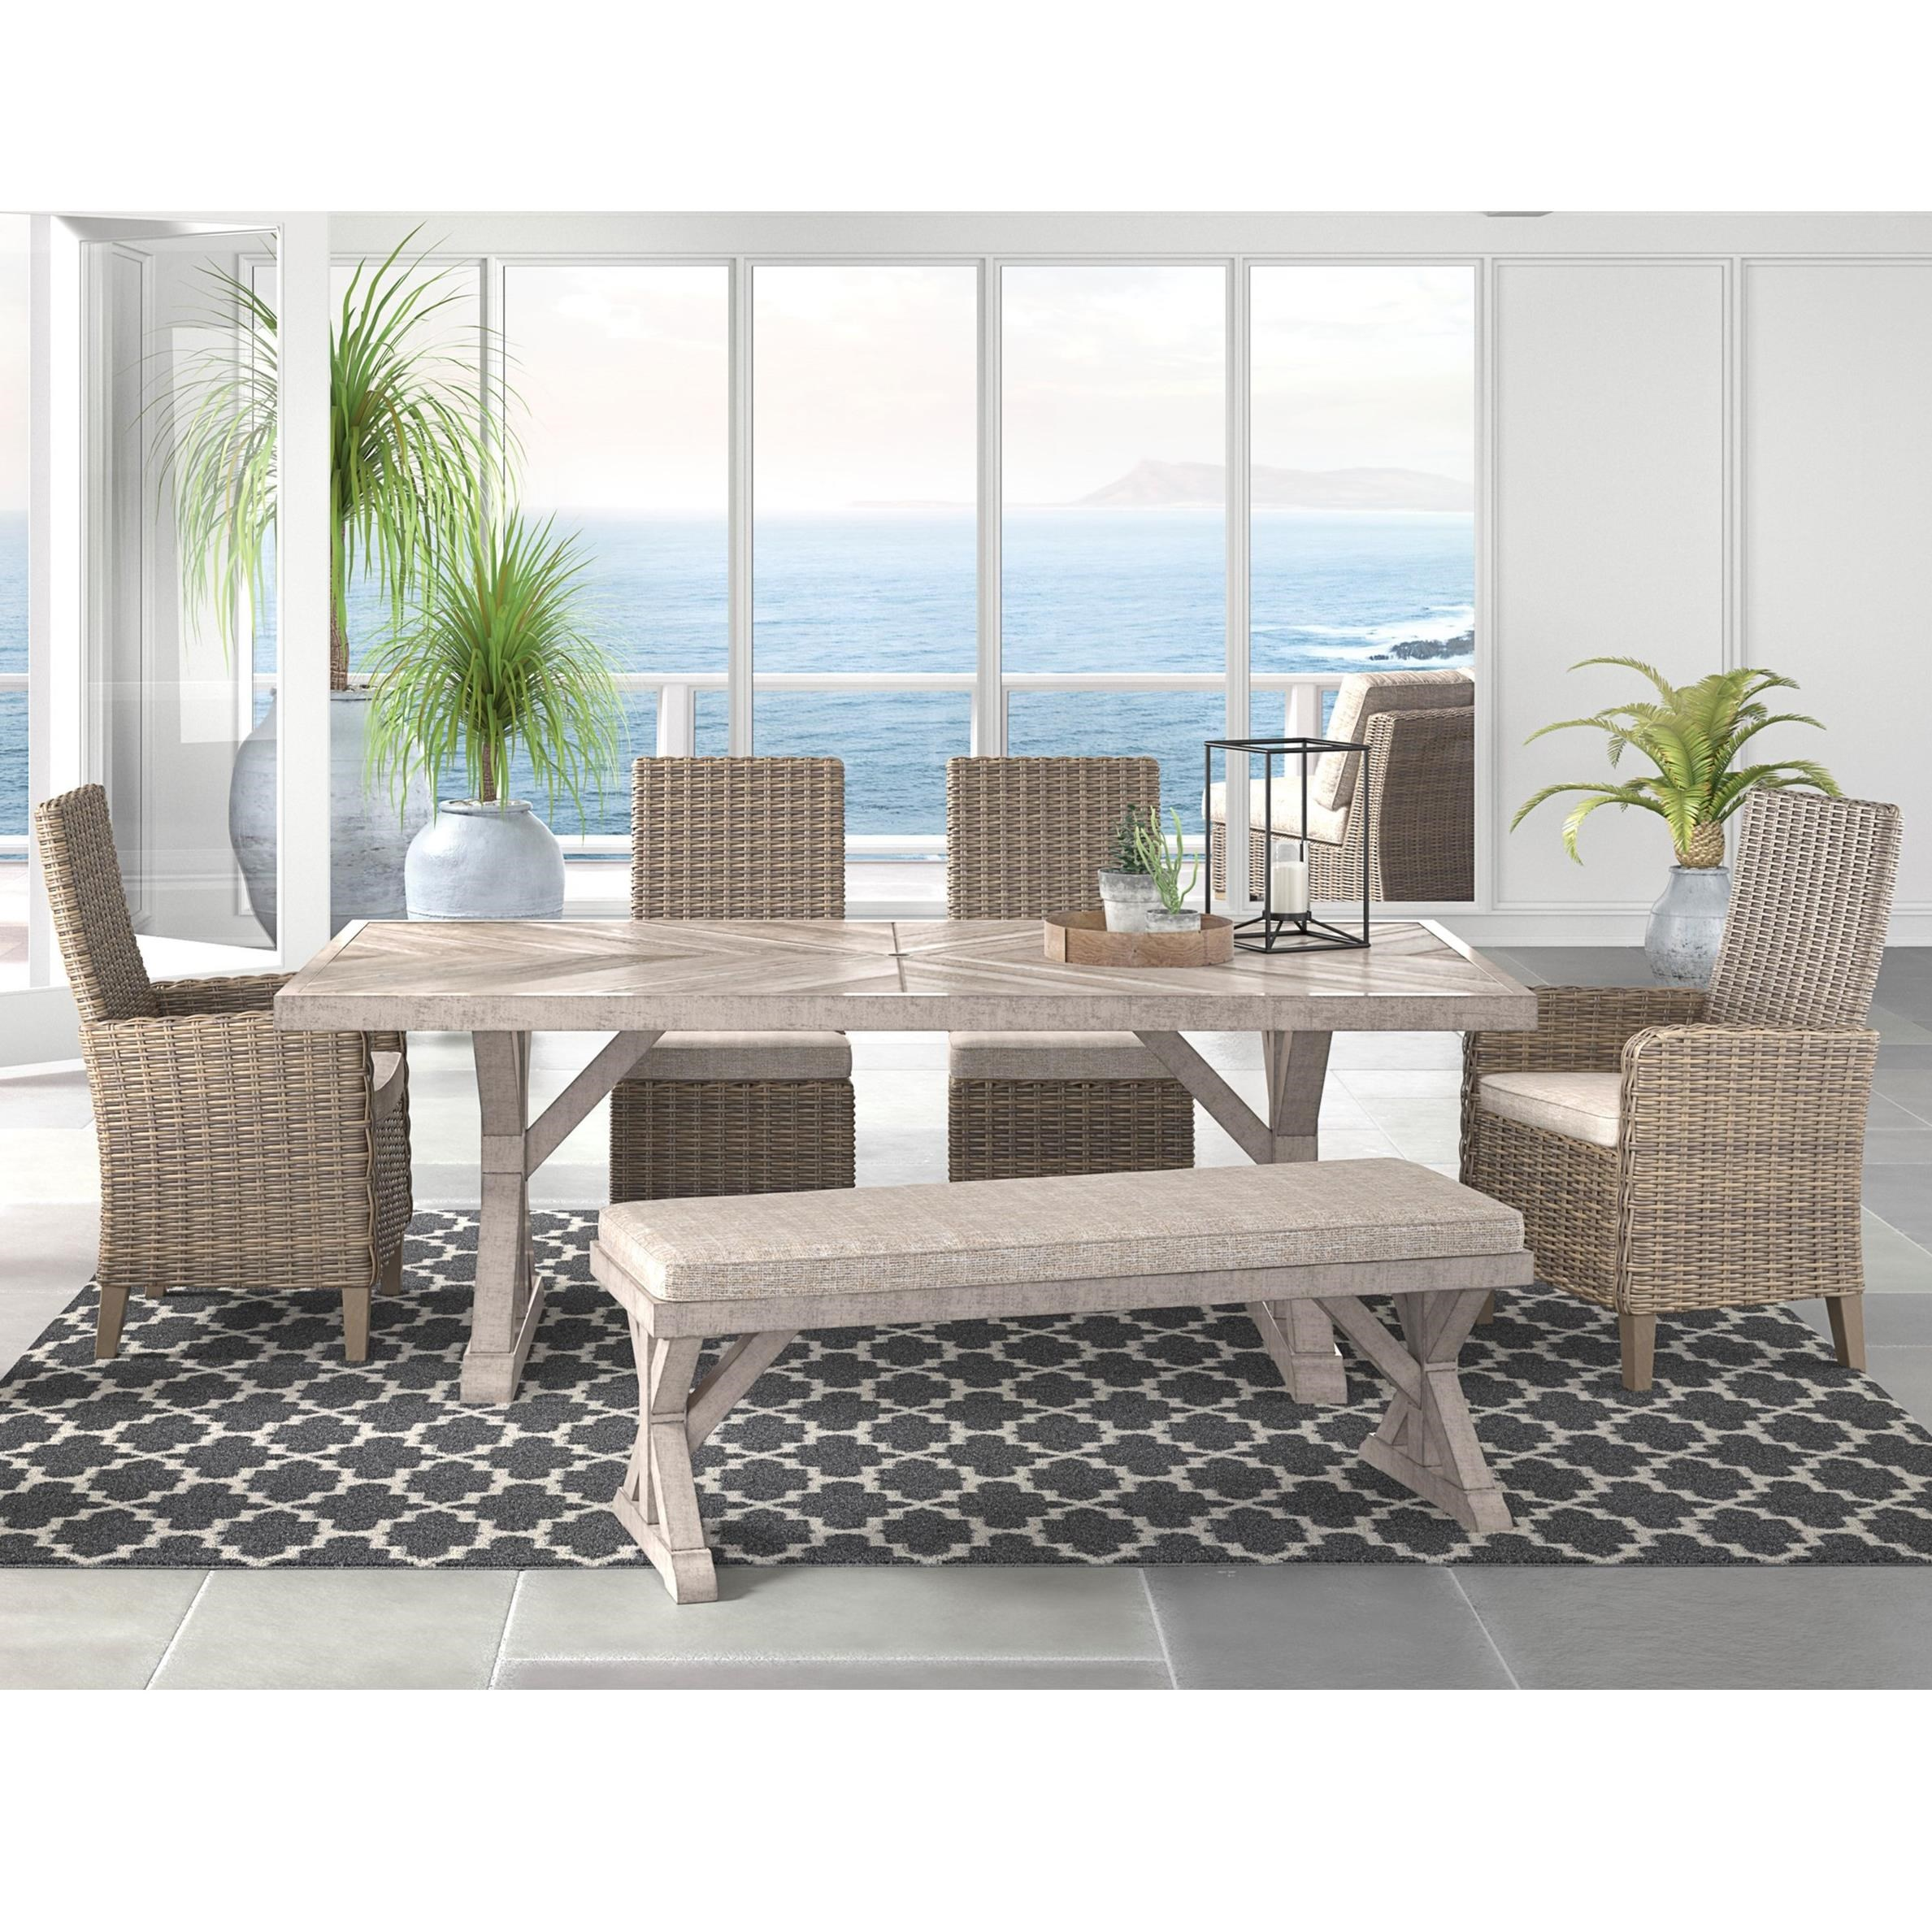 Beachcroft 6 Piece Outdoor Dining Set by Signature Design by Ashley at Lapeer Furniture & Mattress Center